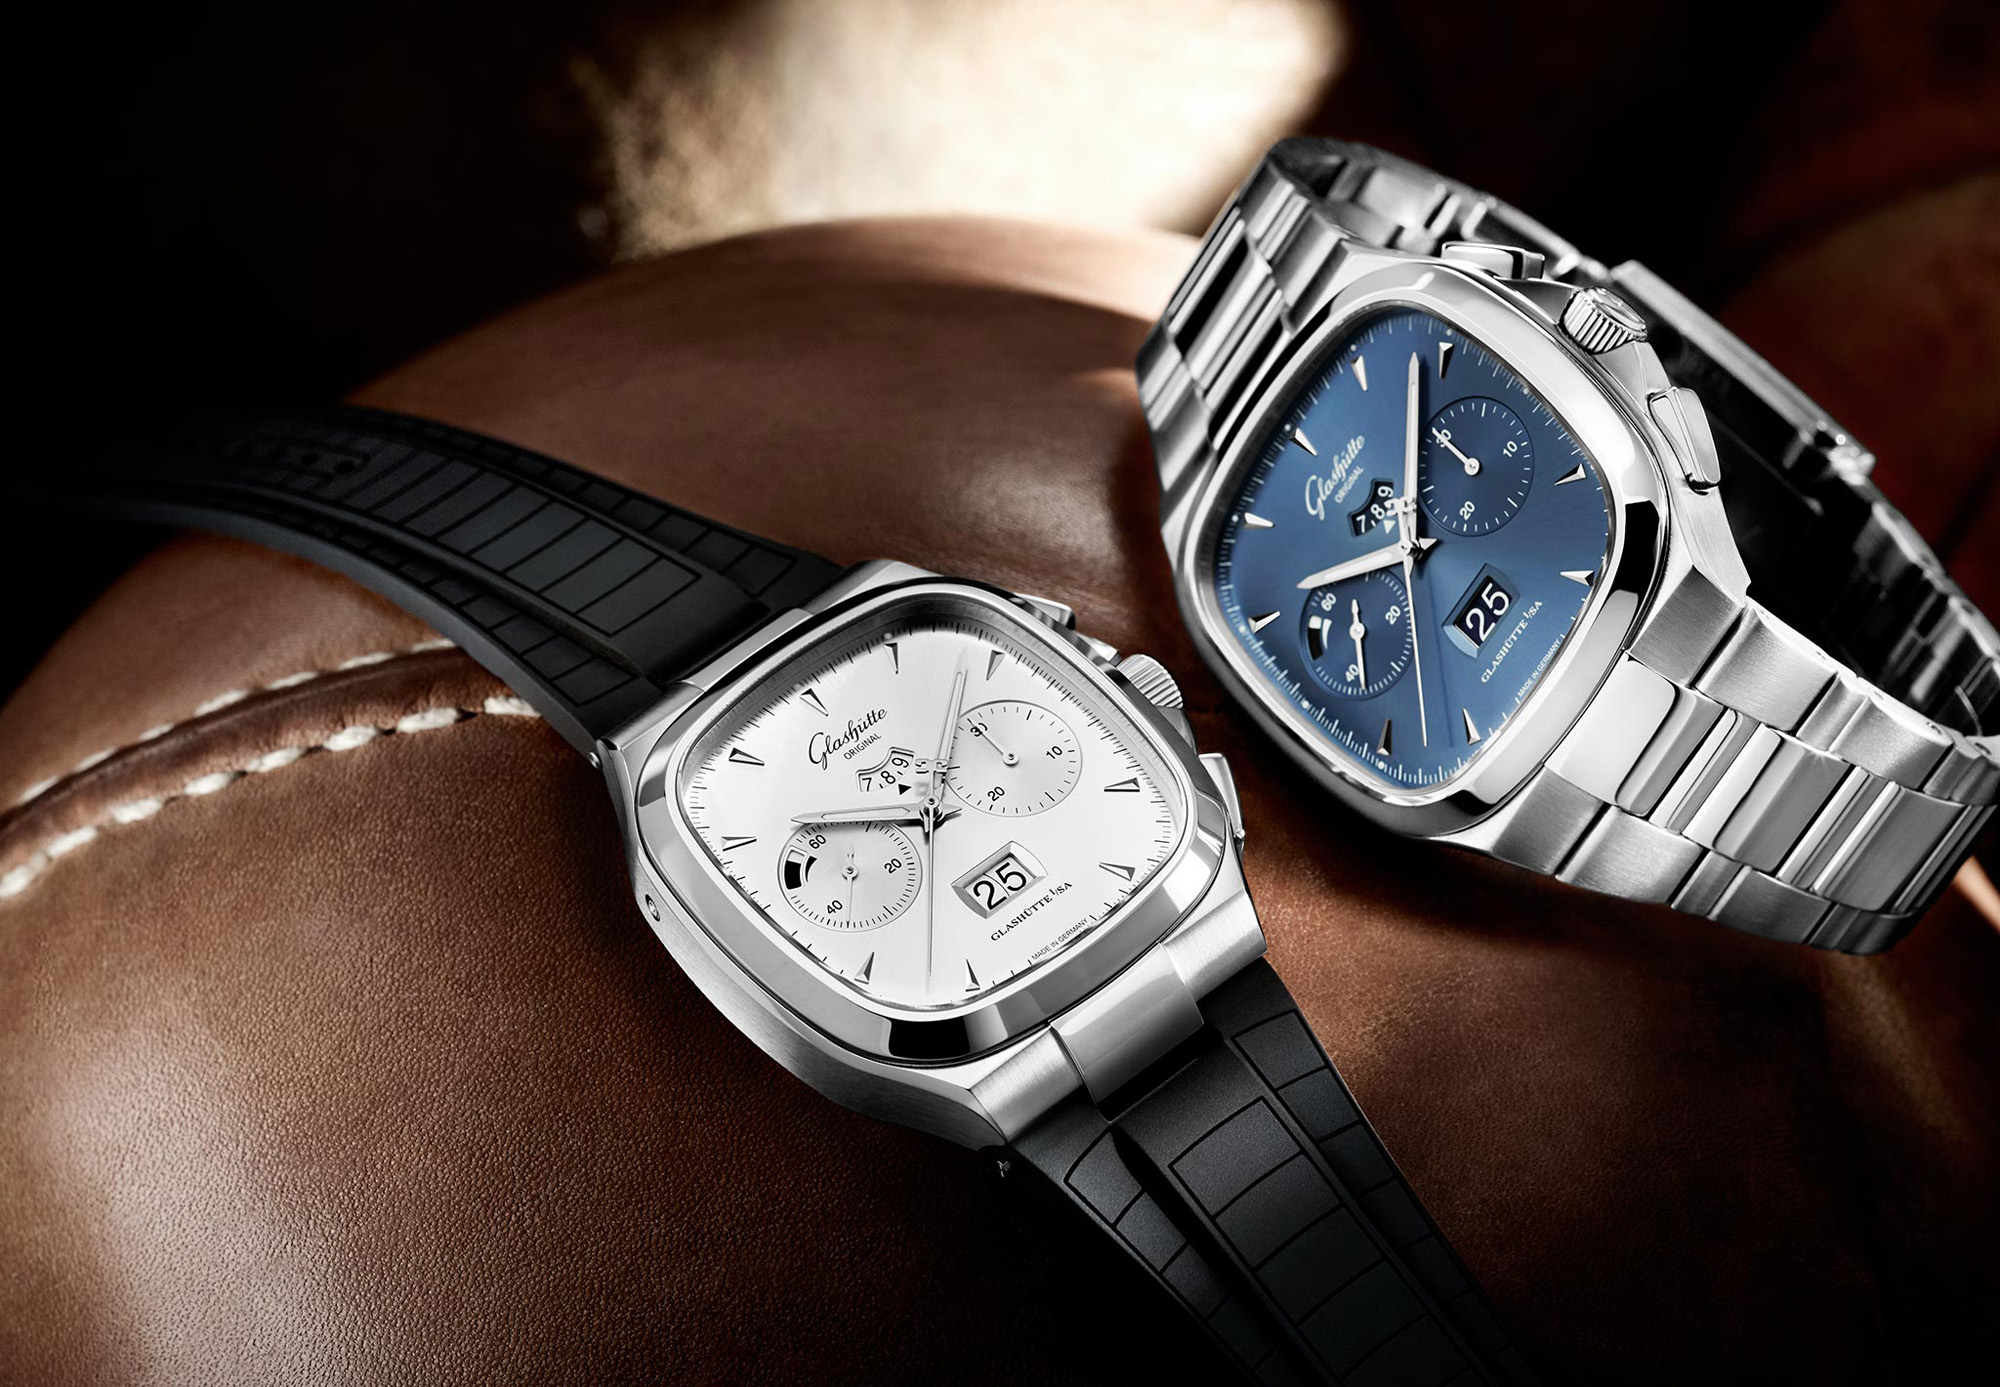 Glashütte Original Seventies Chronograph Panorama Date - Collection Baselworld 2014